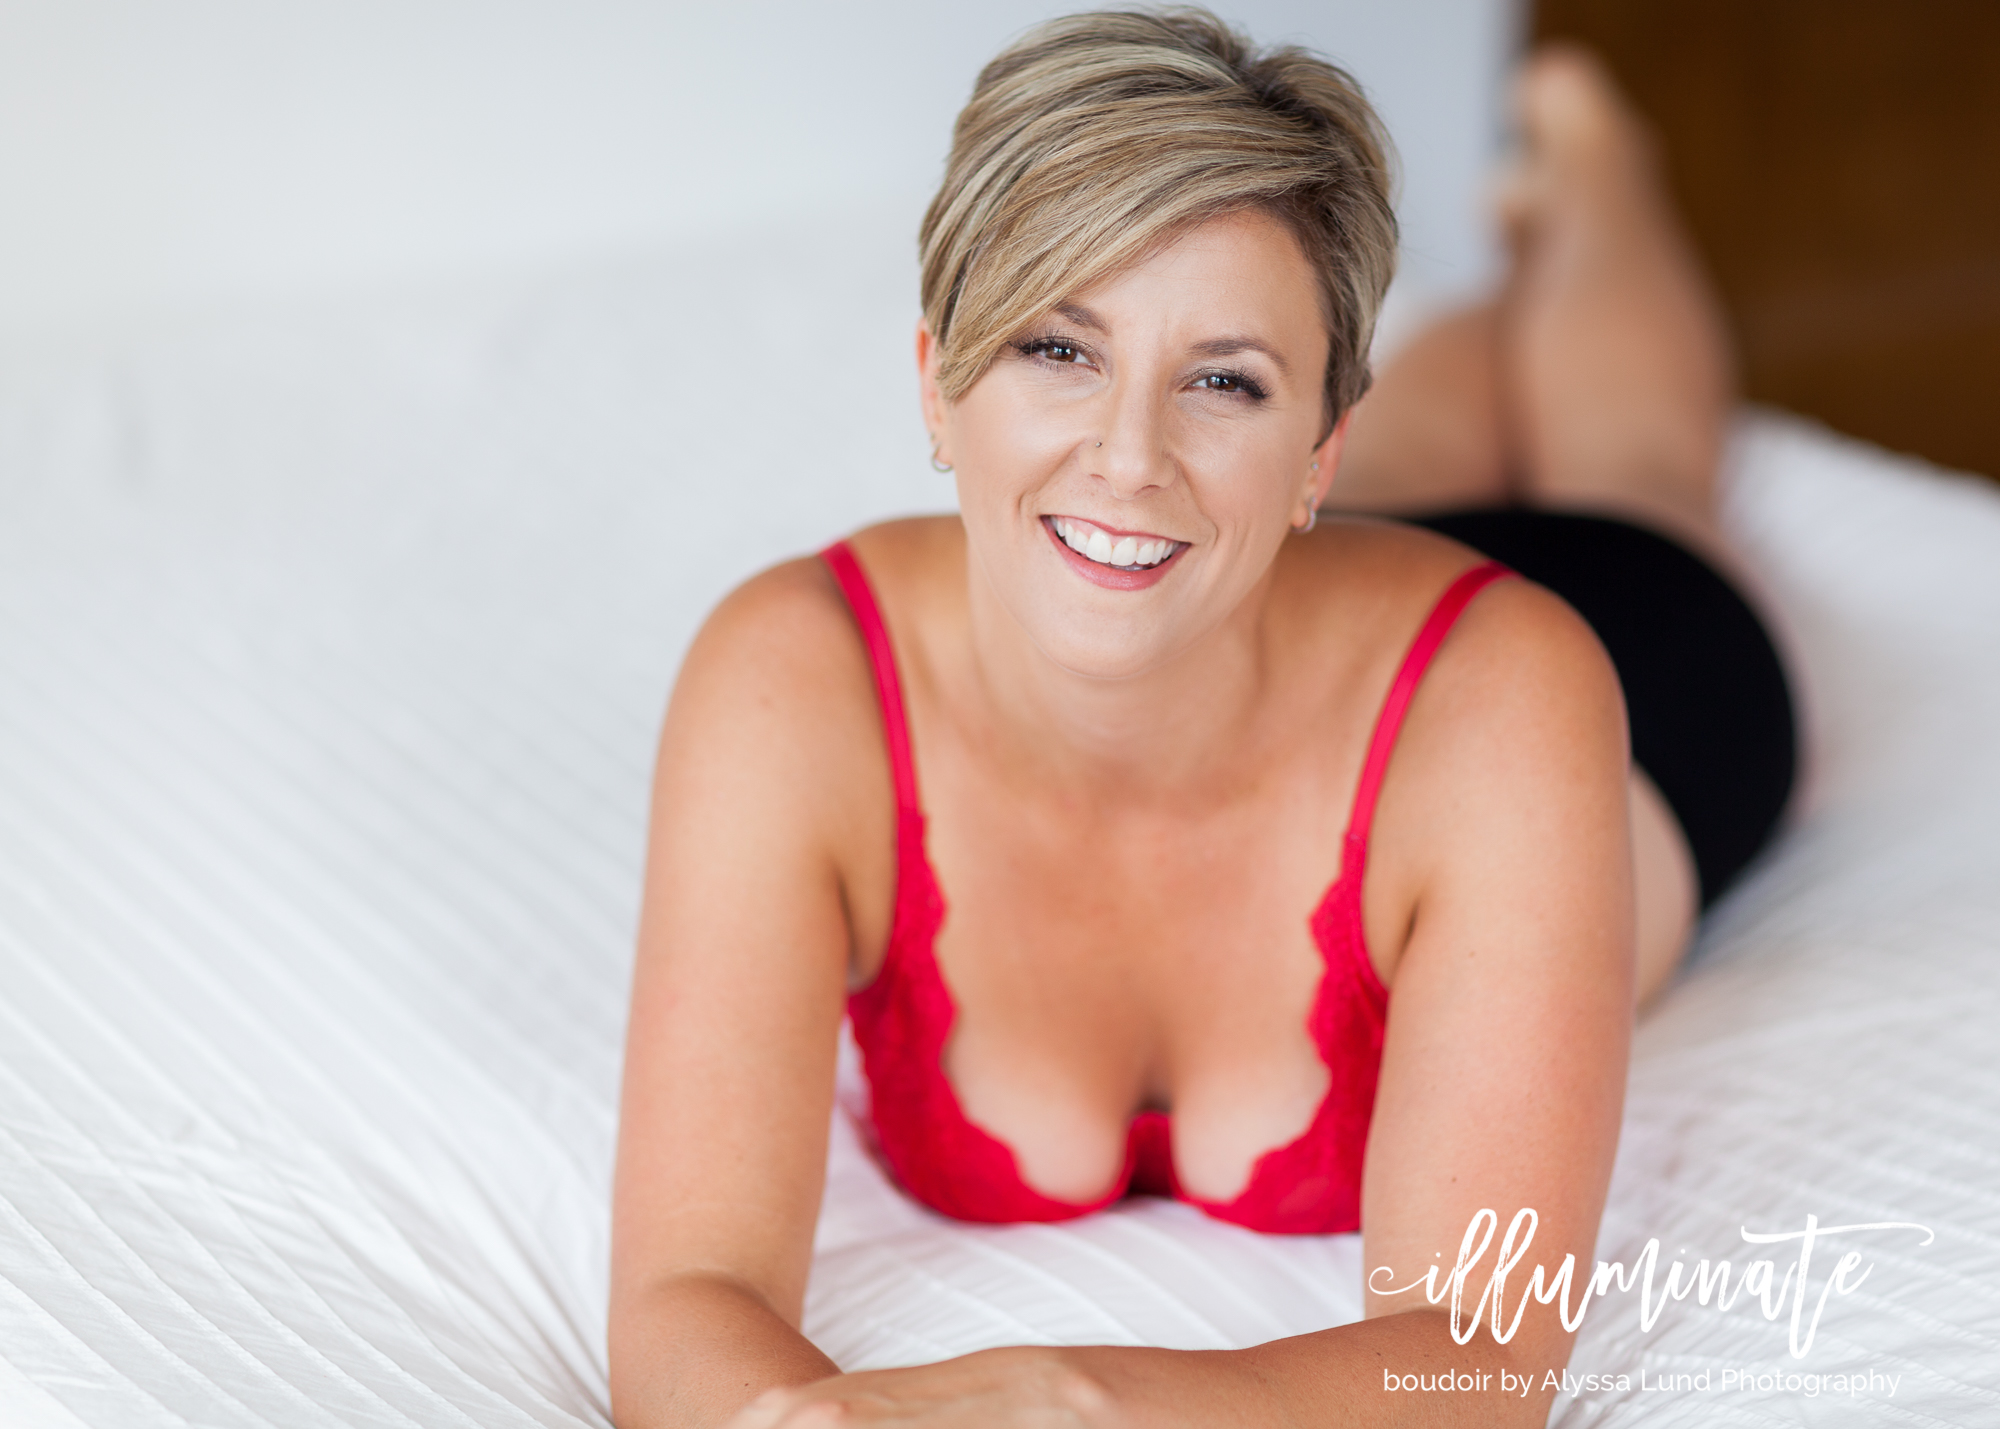 light-and-airy-Minneapolis-boudoir-photography